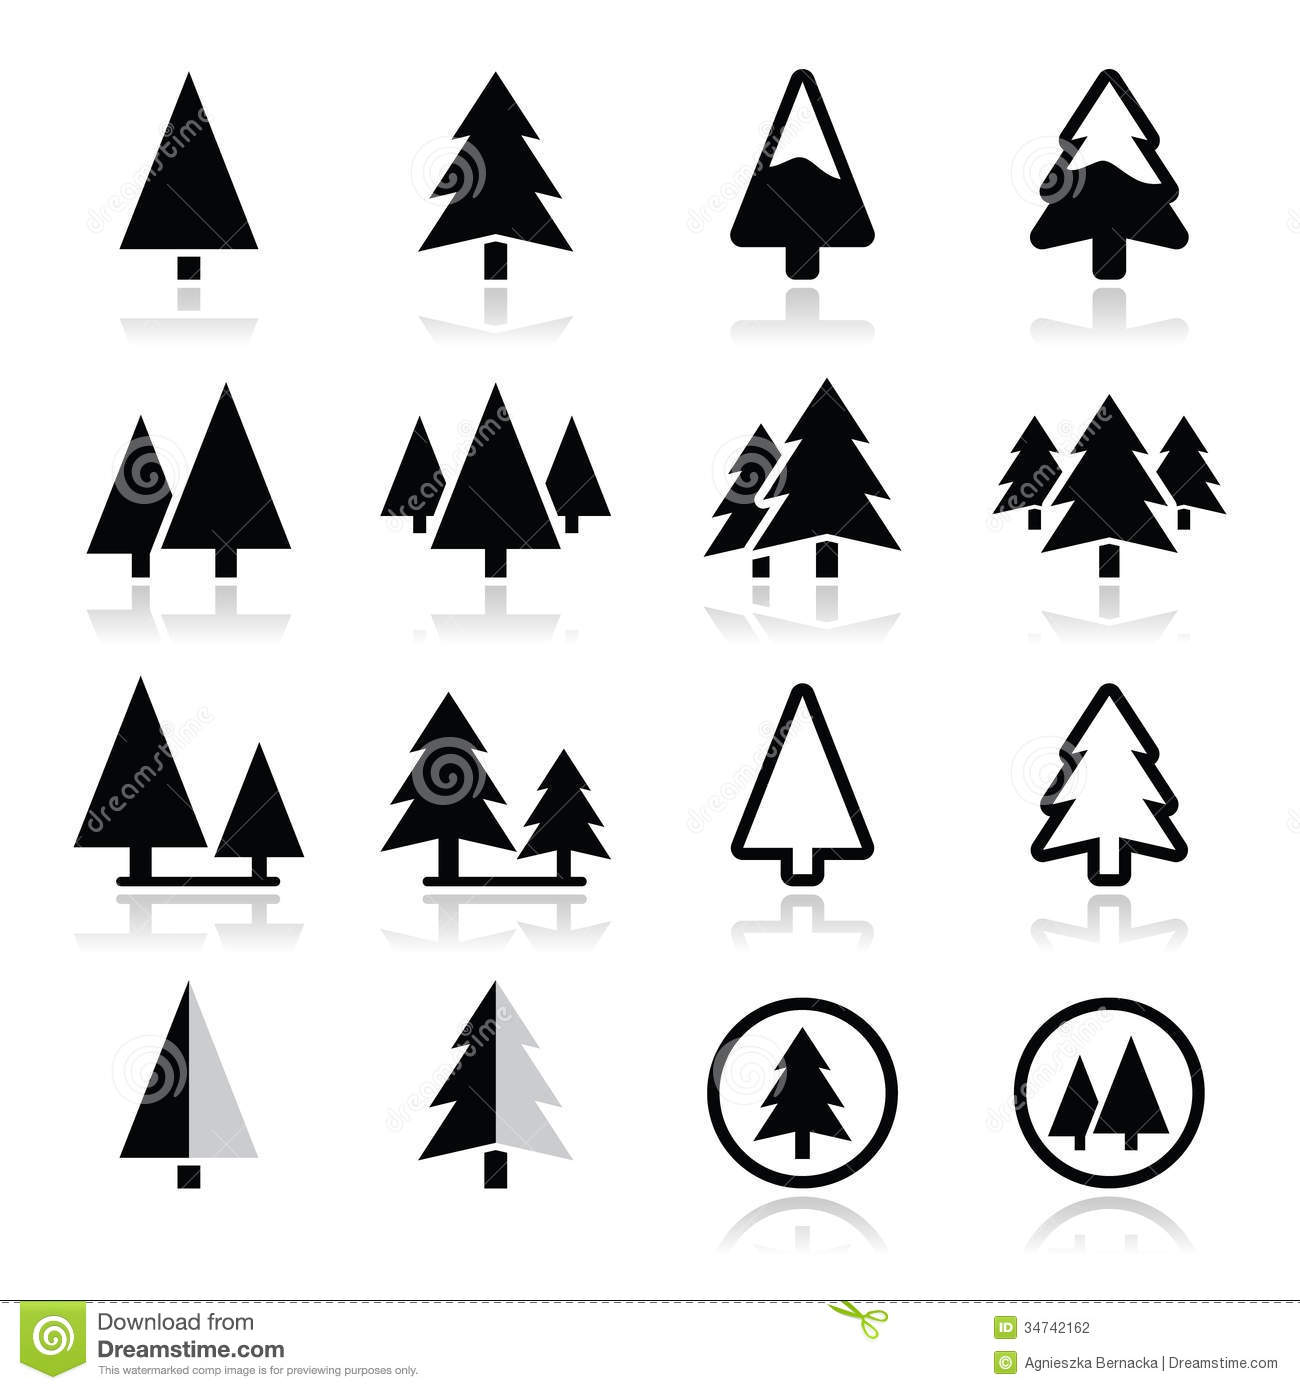 116497667 together with Awning Frame in addition Plan details furthermore Stock Photography Pine Tree Icons Set Trees Forest Park White Image34742162 moreover Stock Photos Polluting Factory Sketch Image22499903. on simple greenhouse plans